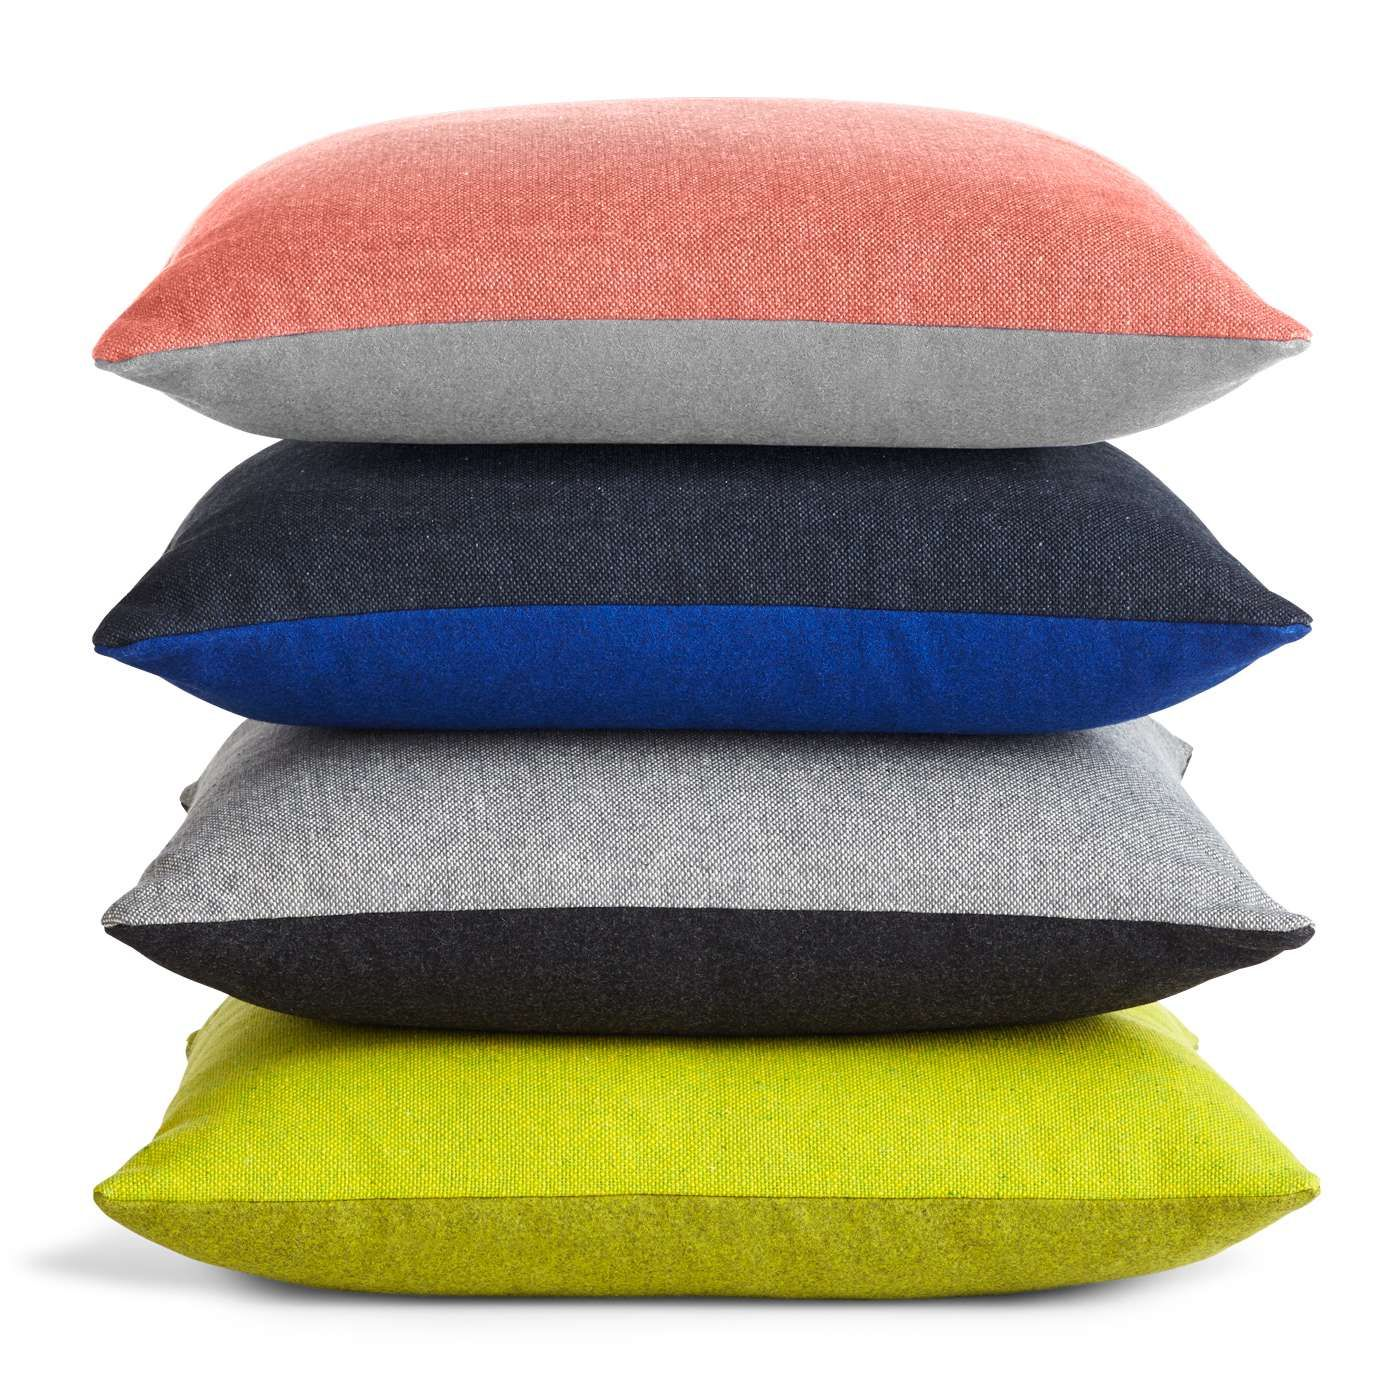 Pillows stacked a pillows pinterest pillows and bed sofa